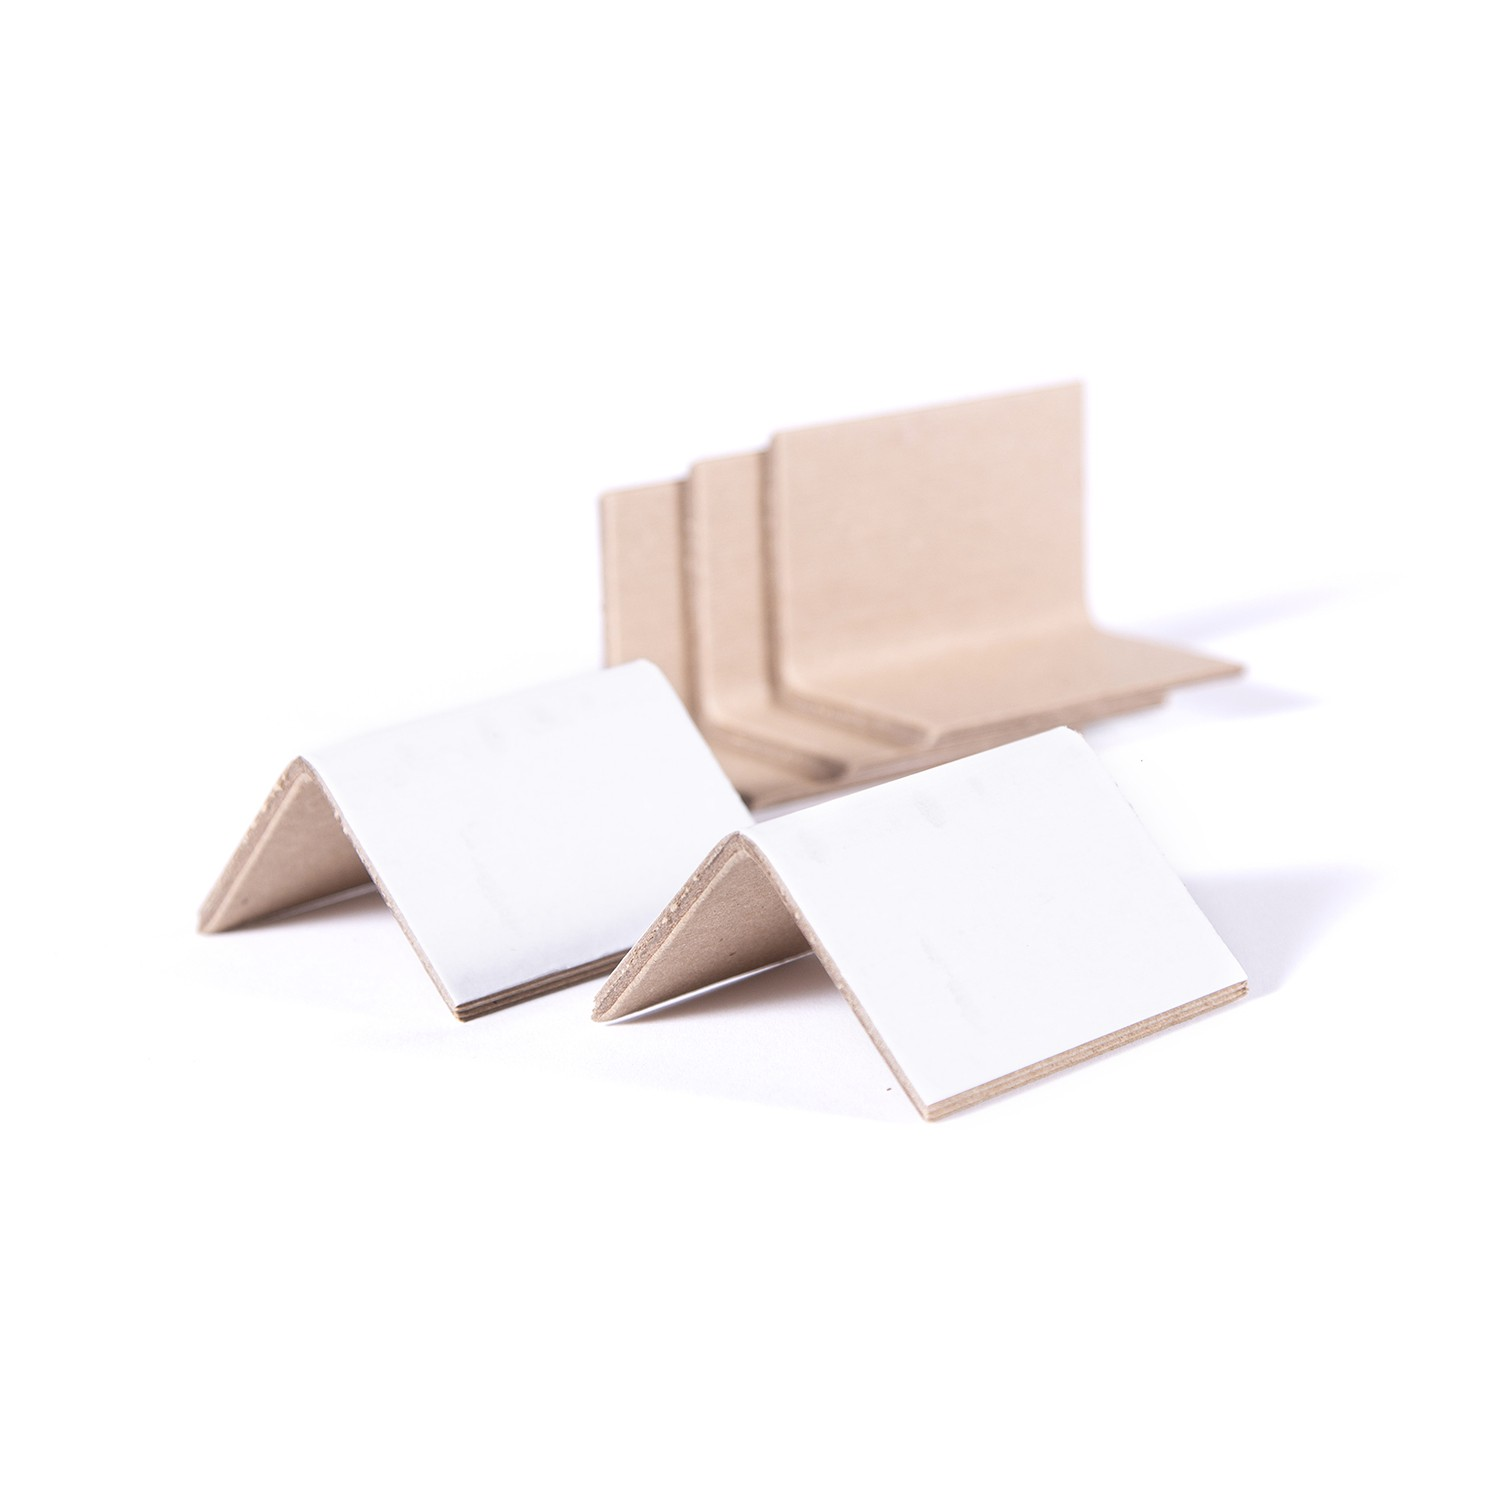 2 x 2 x 24 Cased.120 BOX USA BEP2224120BX Edge Protectors Pack of 200 White